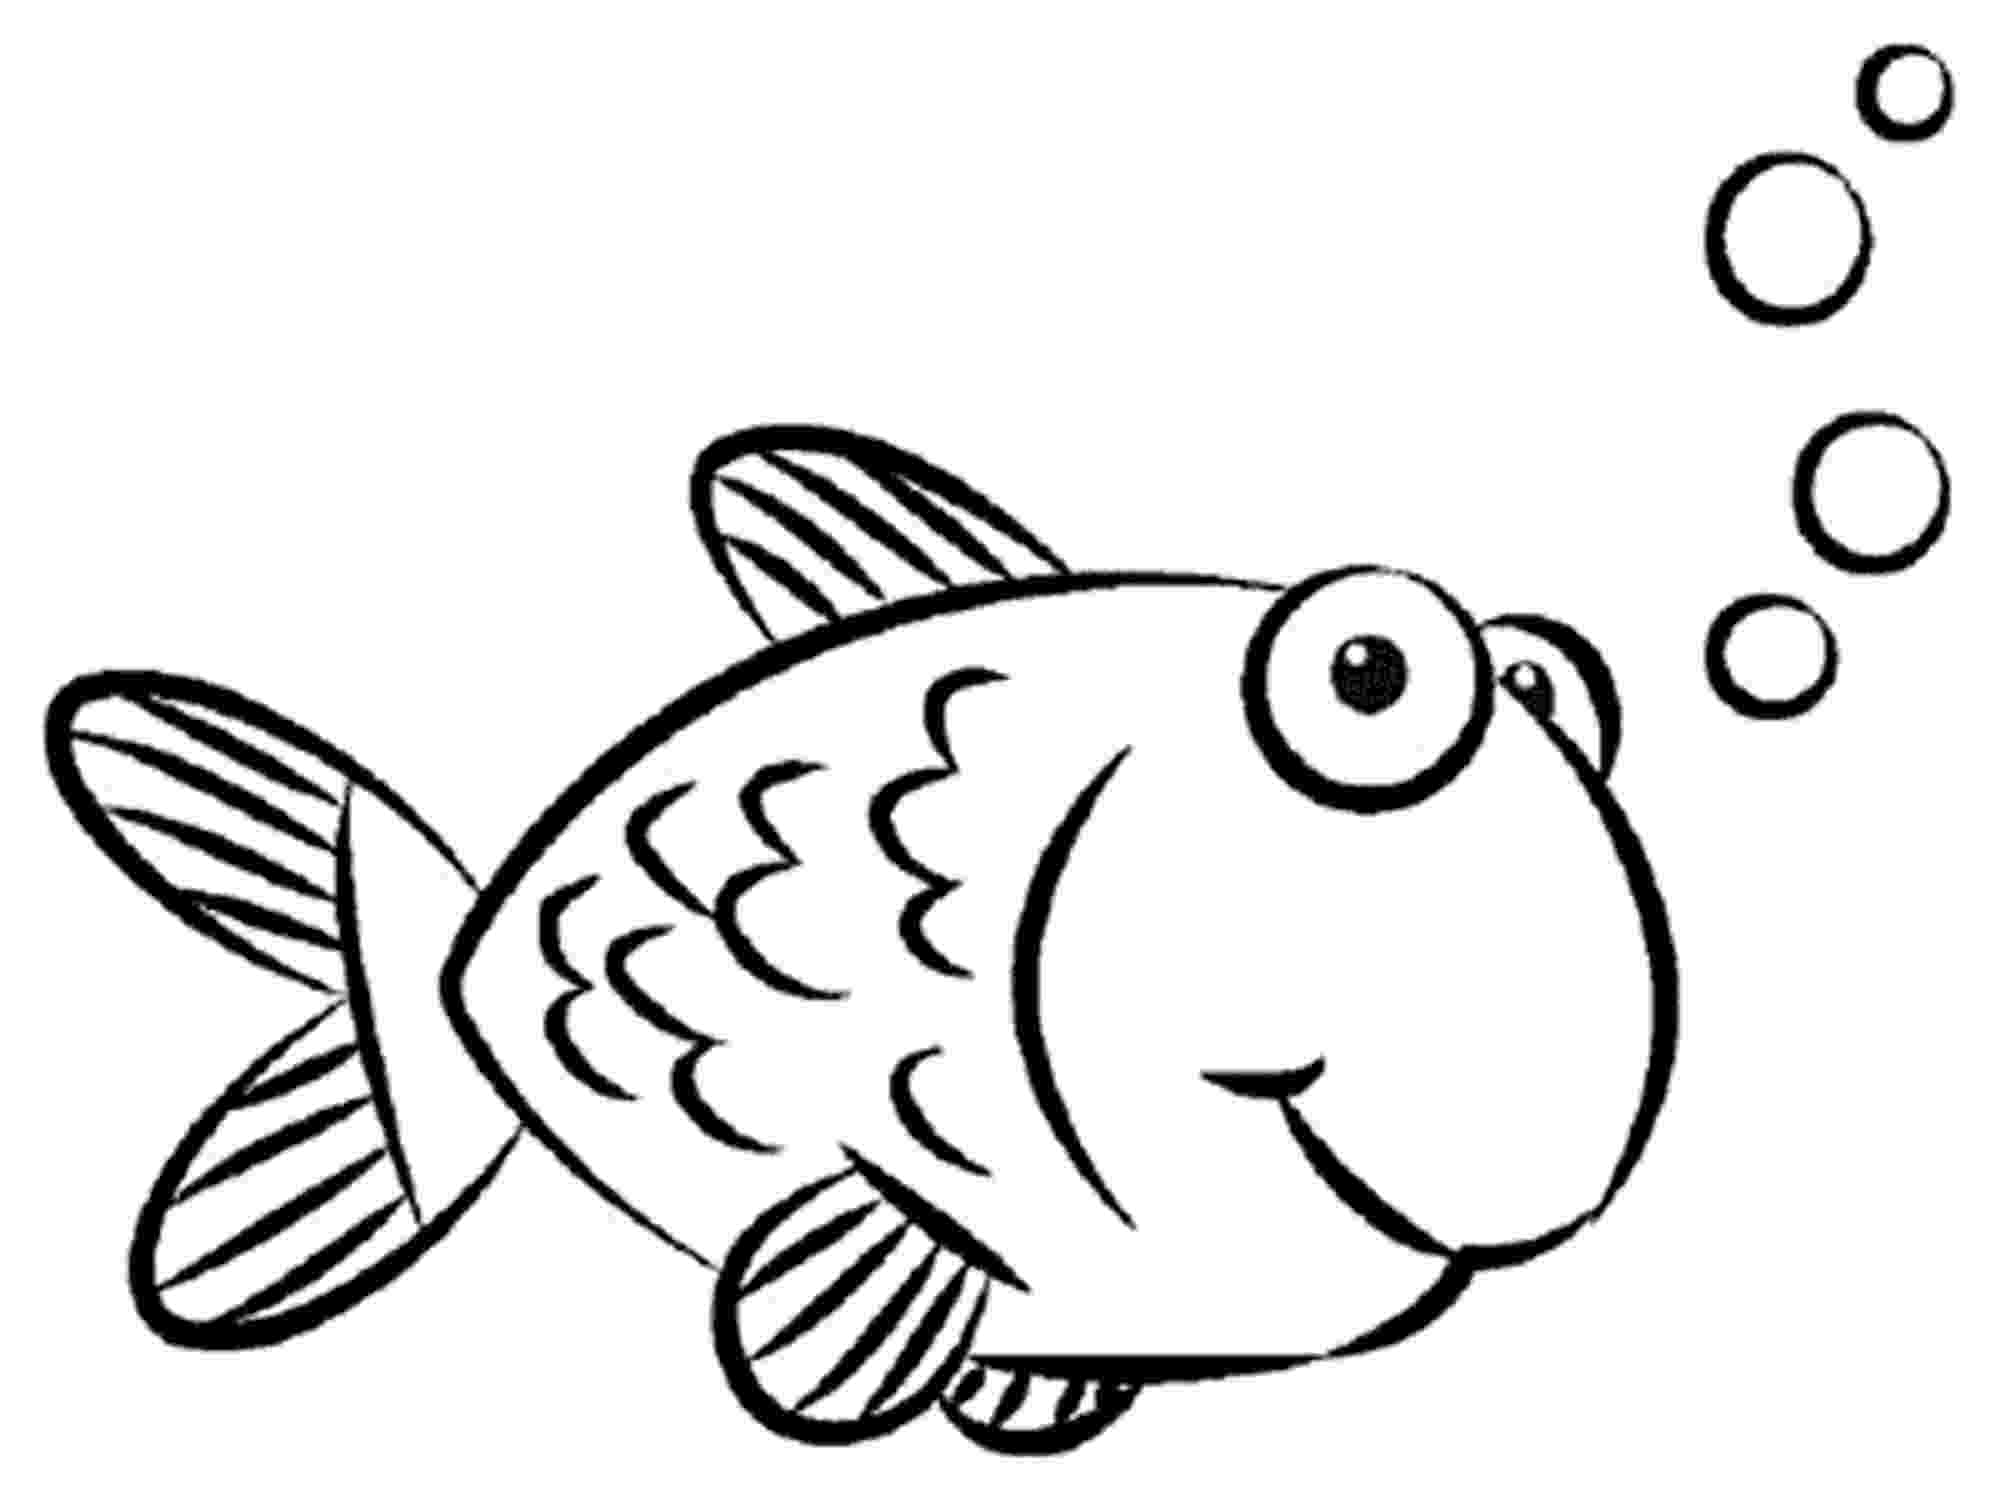 fish colouring images print download cute and educative fish coloring pages fish images colouring